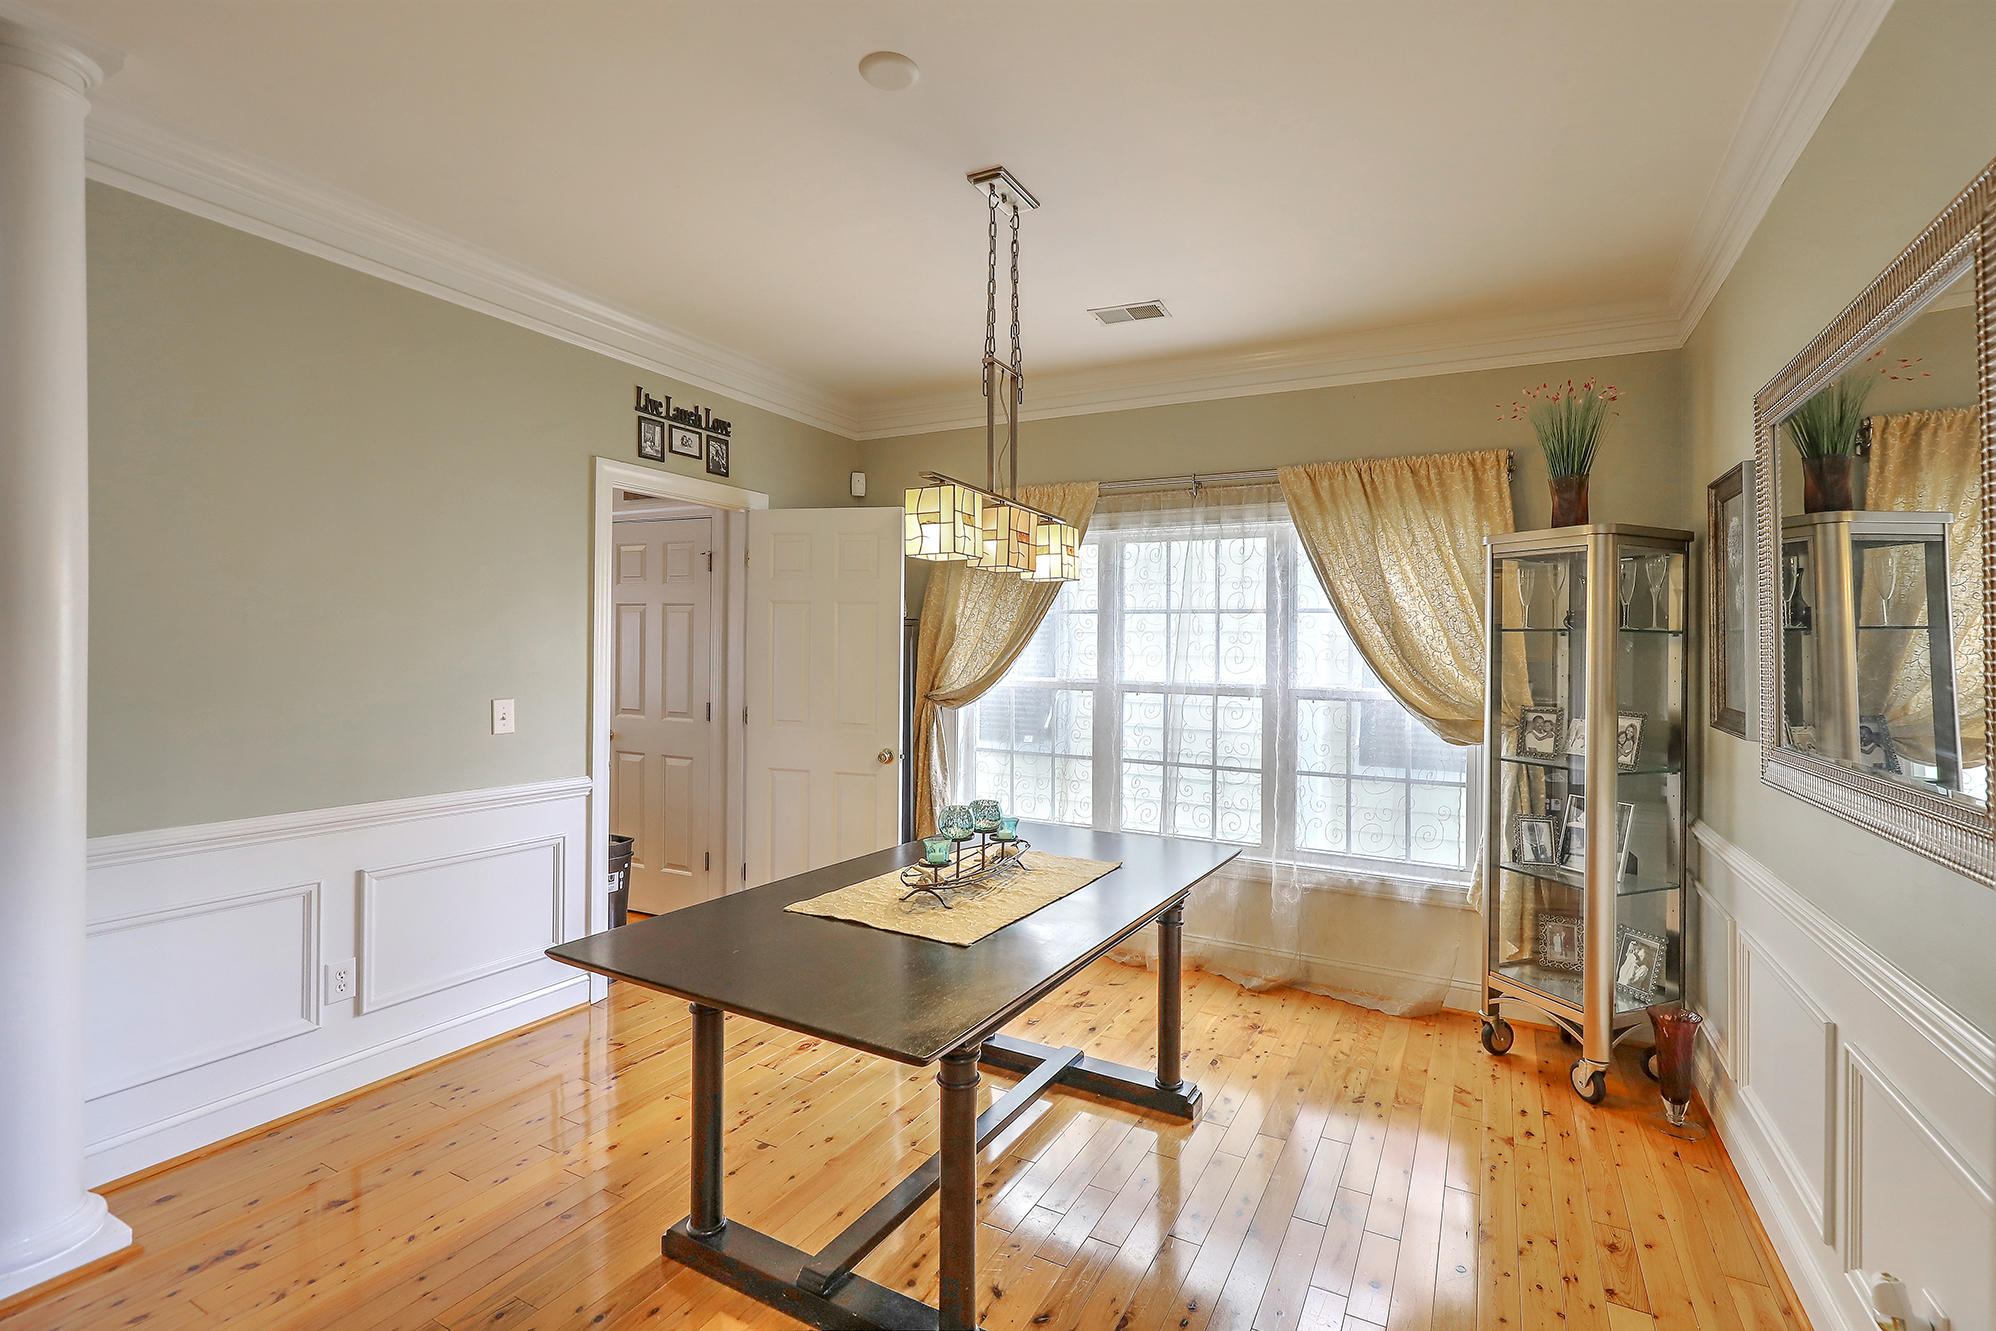 Rivertowne On The Wando Homes For Sale - 2182 Sandy Point Lane, Mount Pleasant, SC - 29